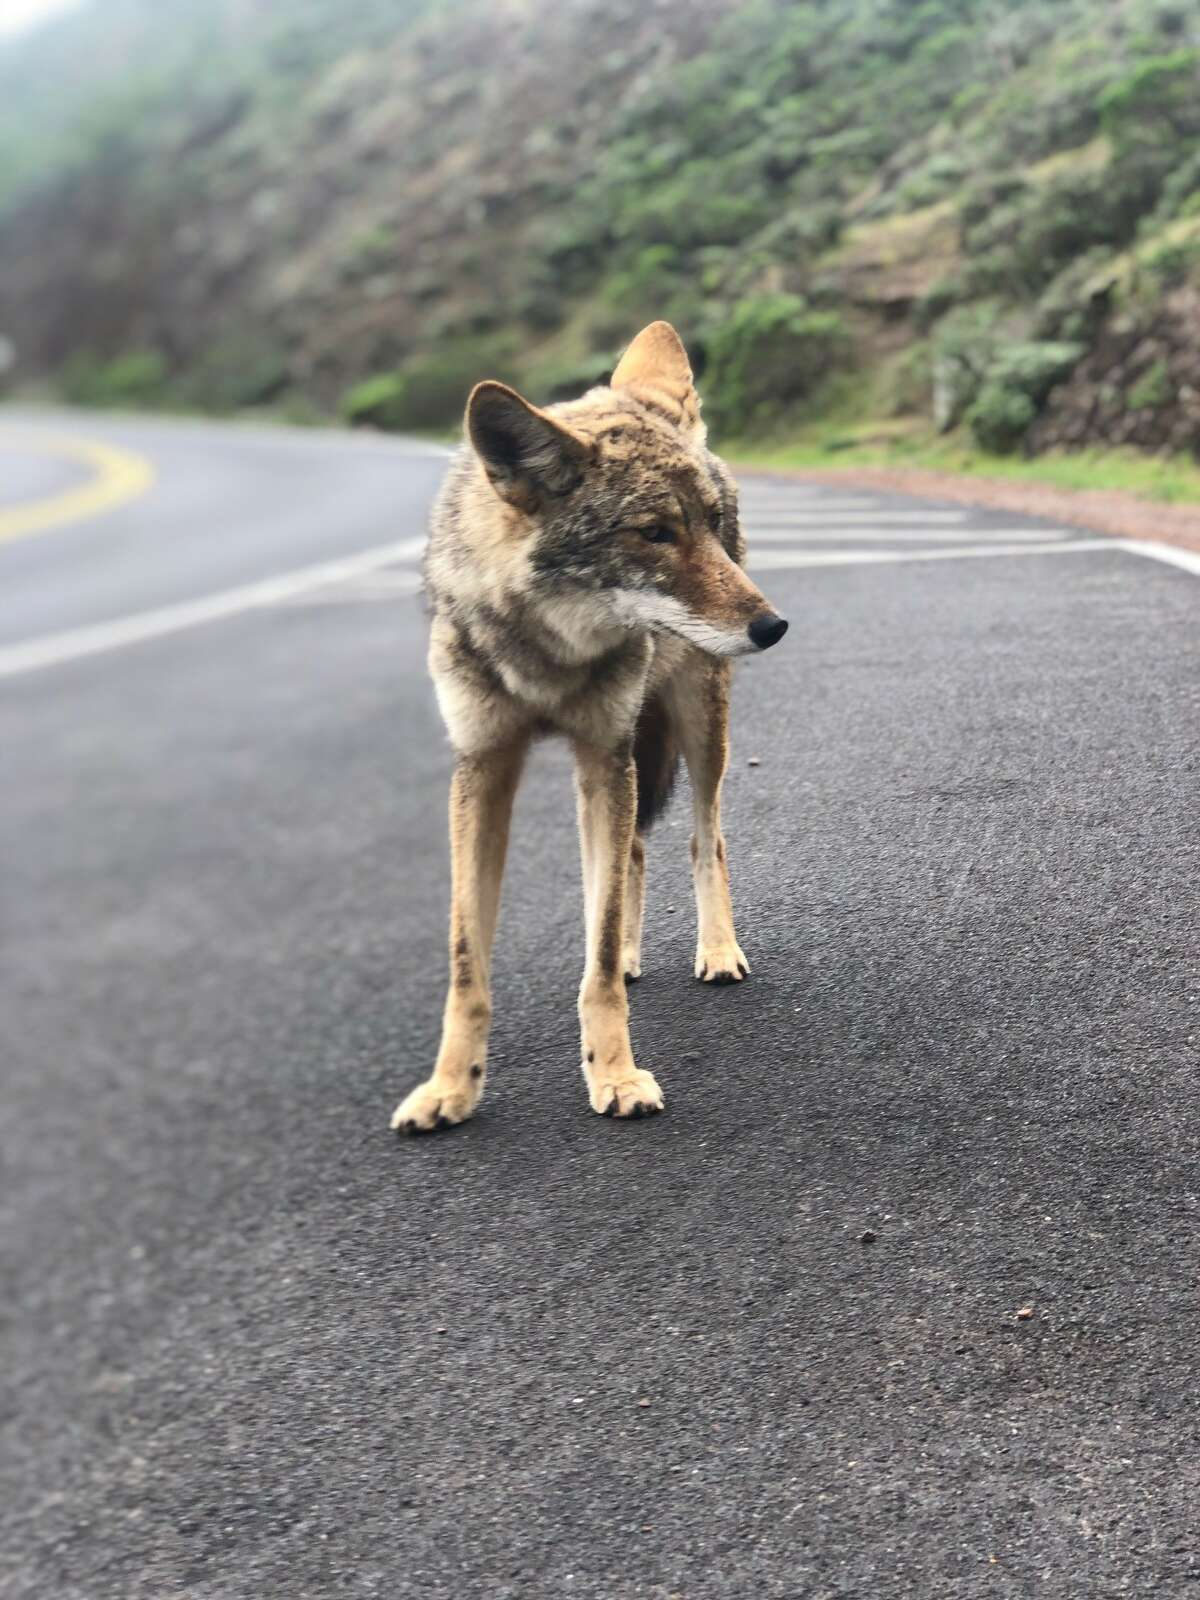 A coyote in San Francisco, March 2020, sent in by reader Charles Linder